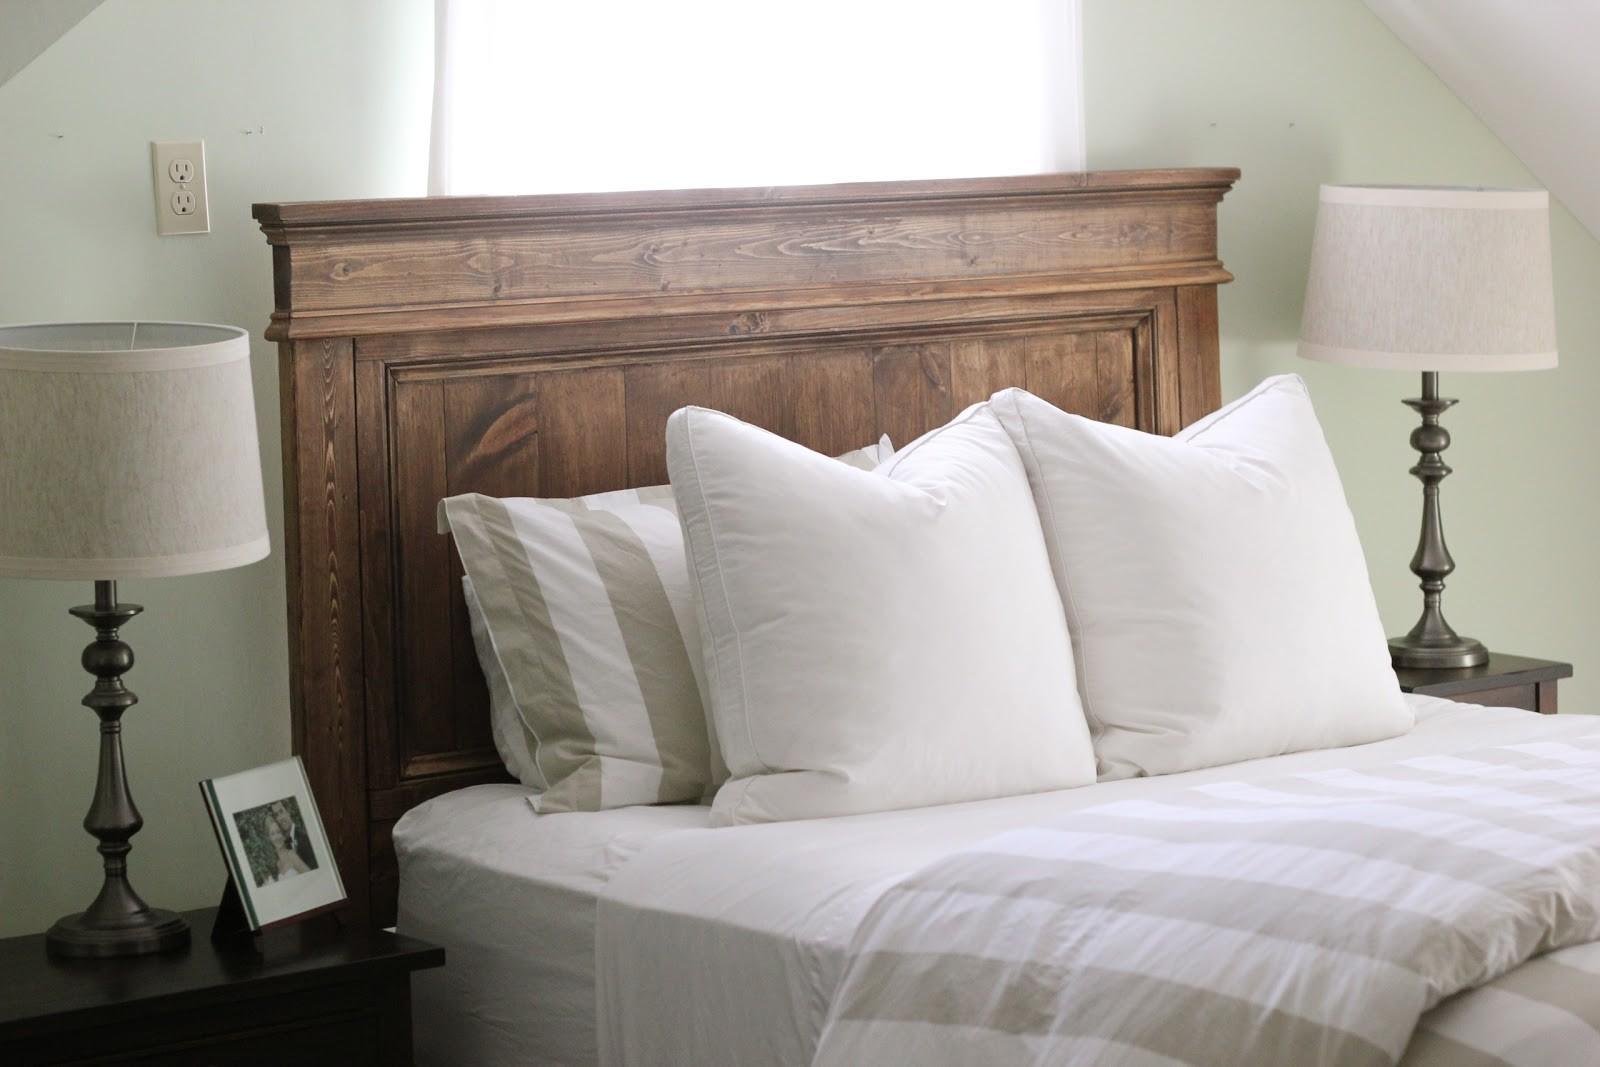 36 Phenomenal Wooden Headboard Ideas That Abound With Simplicity Elegance Awesome Pictures Decoratorist